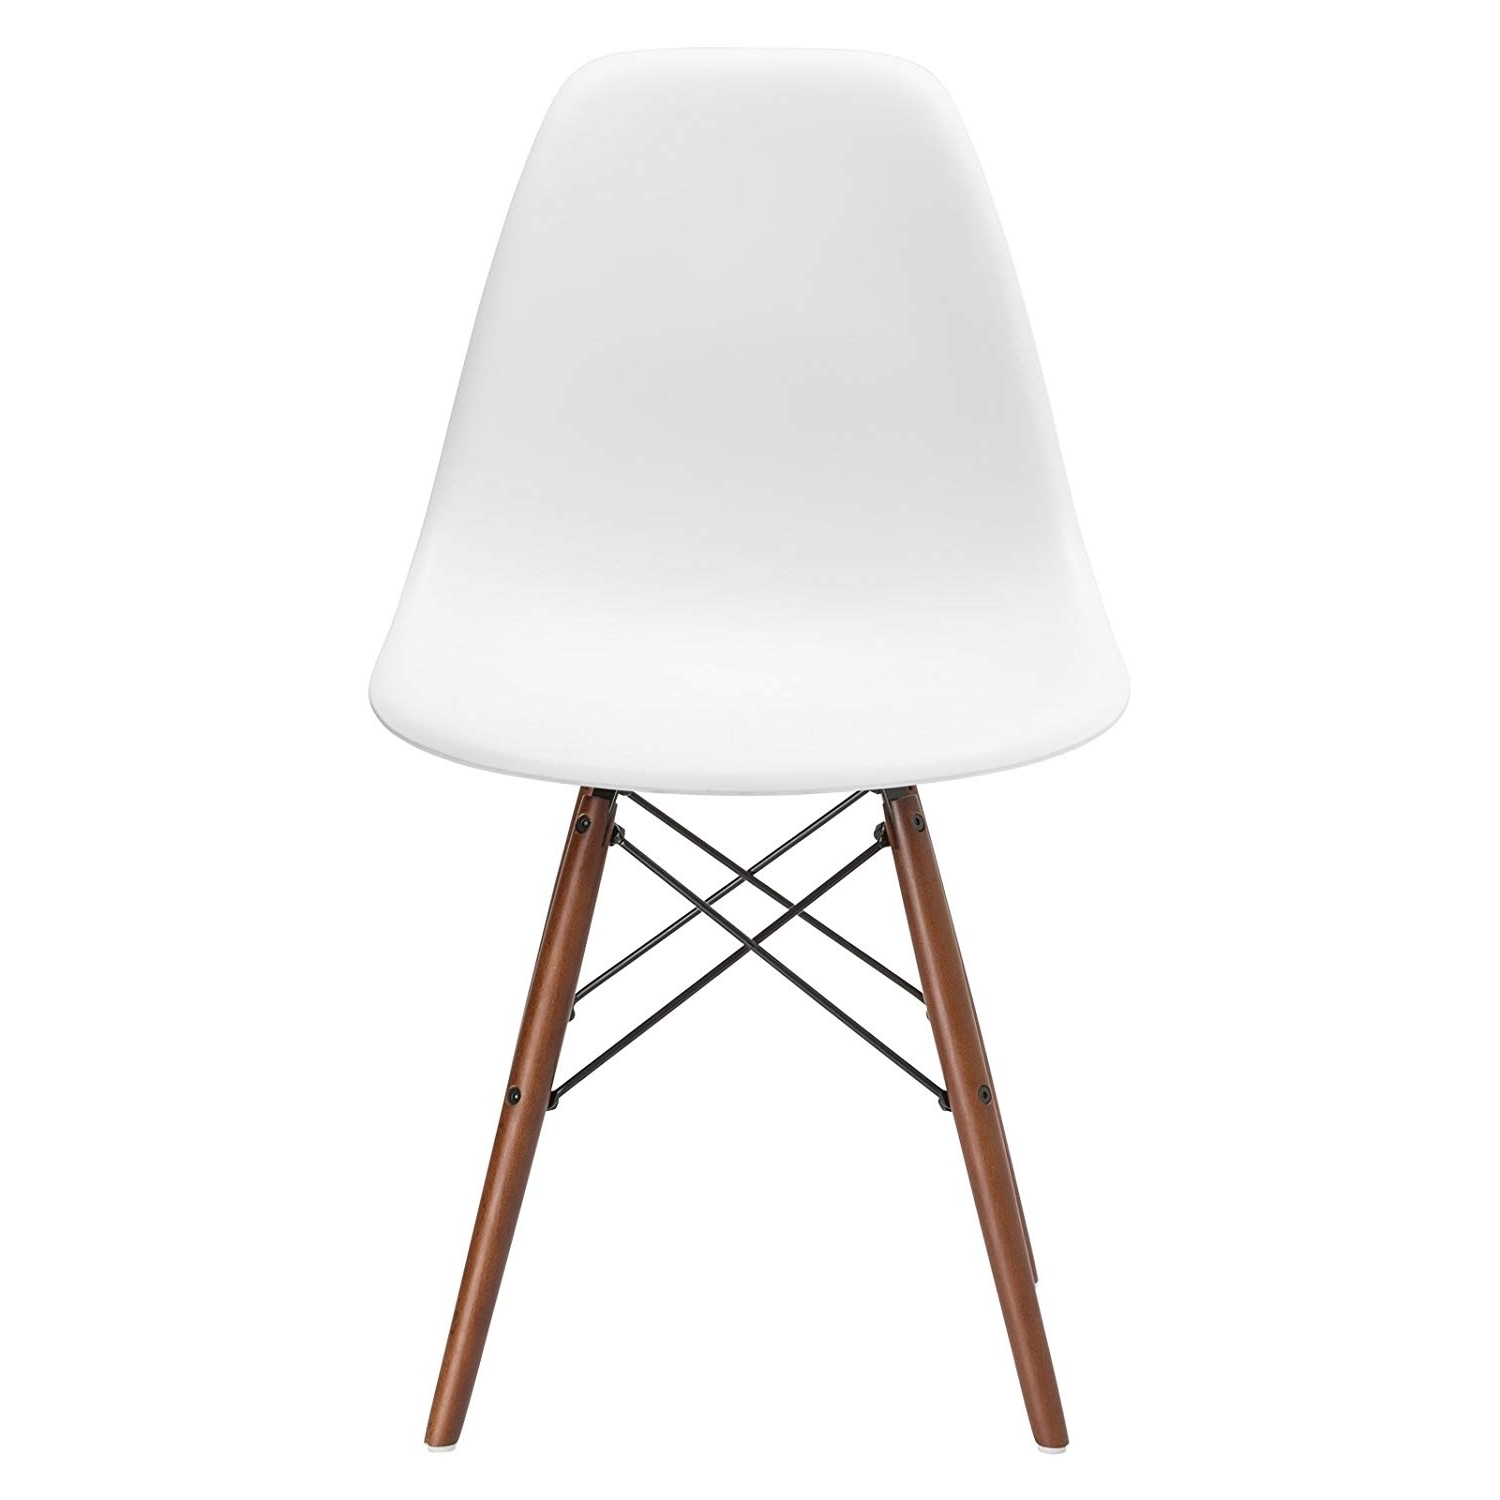 Widely Used Alexa White Side Chairs Within Amazon – Poly And Bark Vortex Side Chair With Walnut Legs In (View 20 of 20)